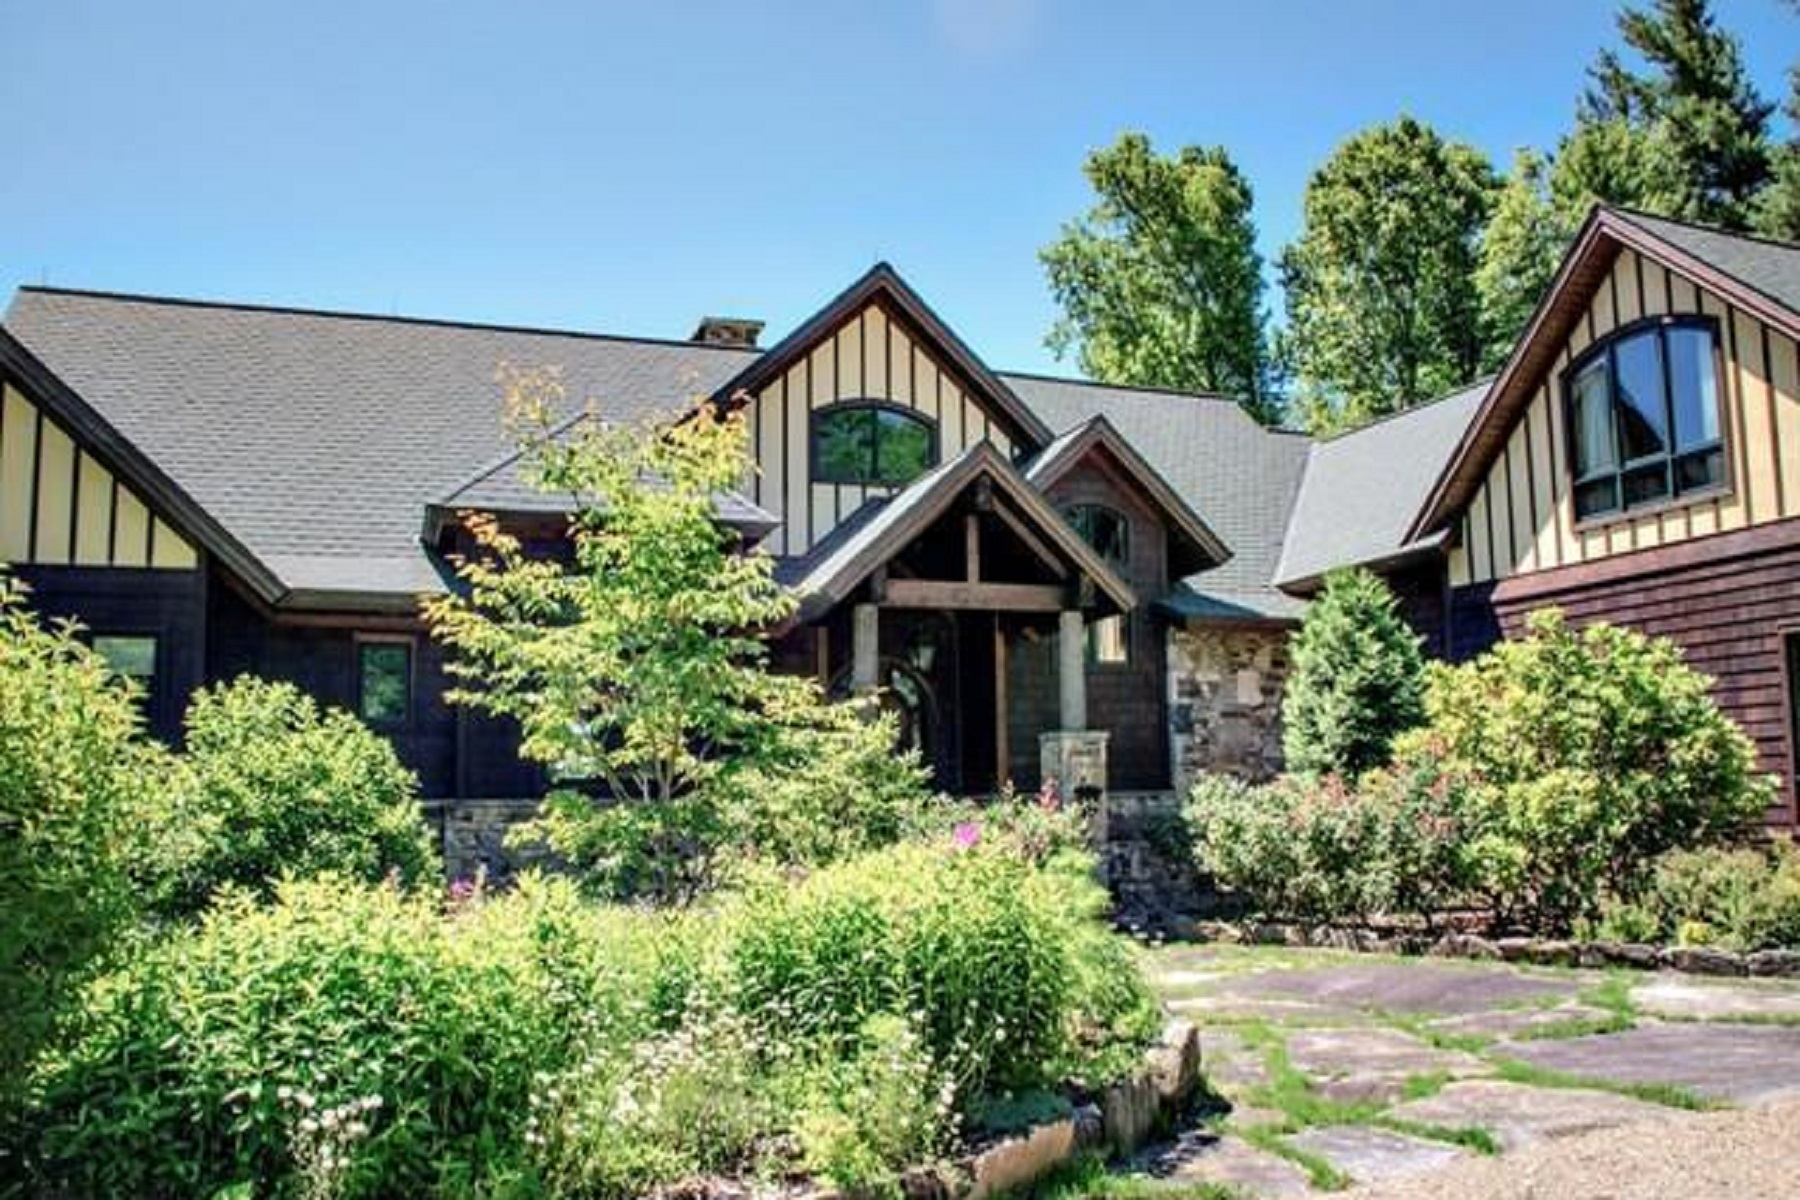 Single Family Home for Active at 151 Jocassee Trail Sapphire, North Carolina 28774 United States